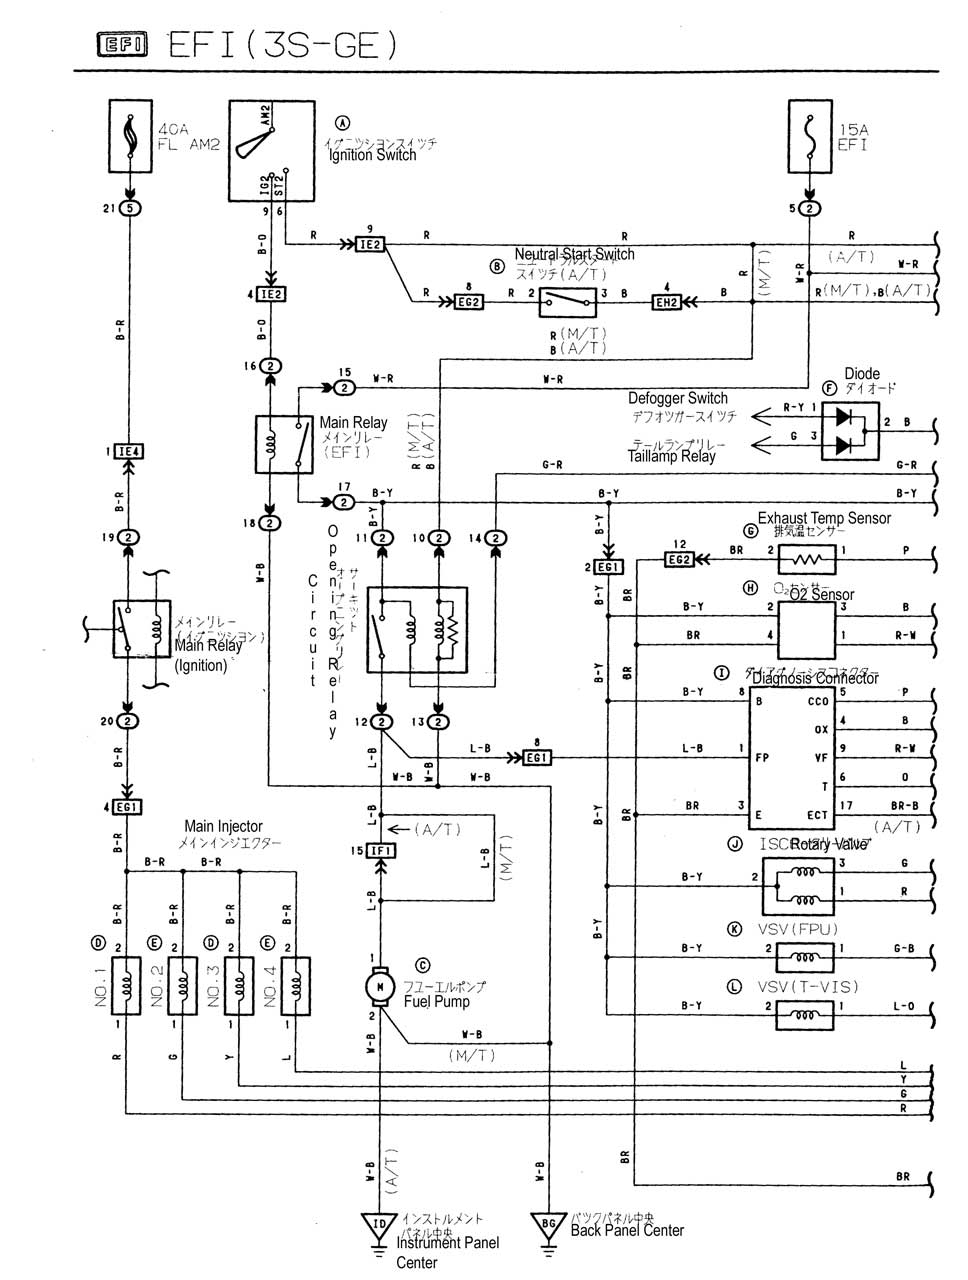 onan p218g engine parts diagram html